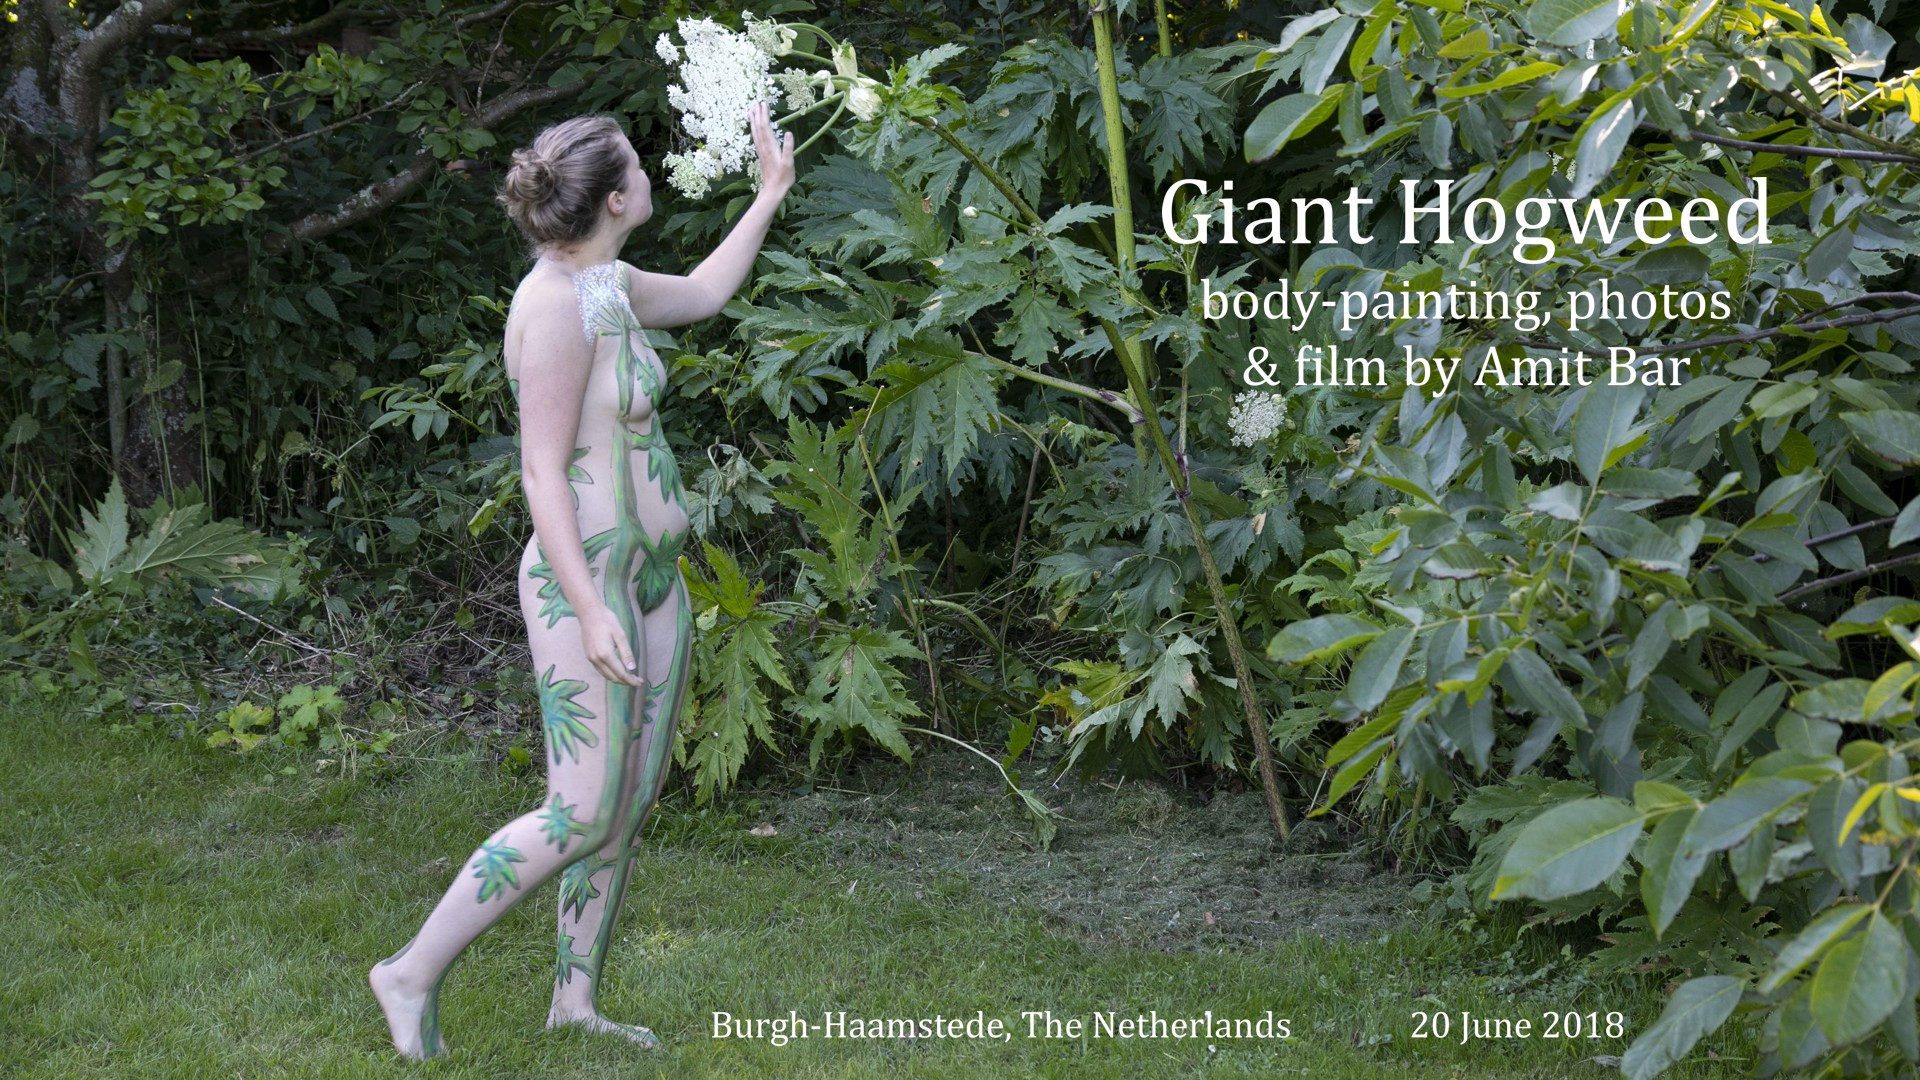 Giant Hoogweed video